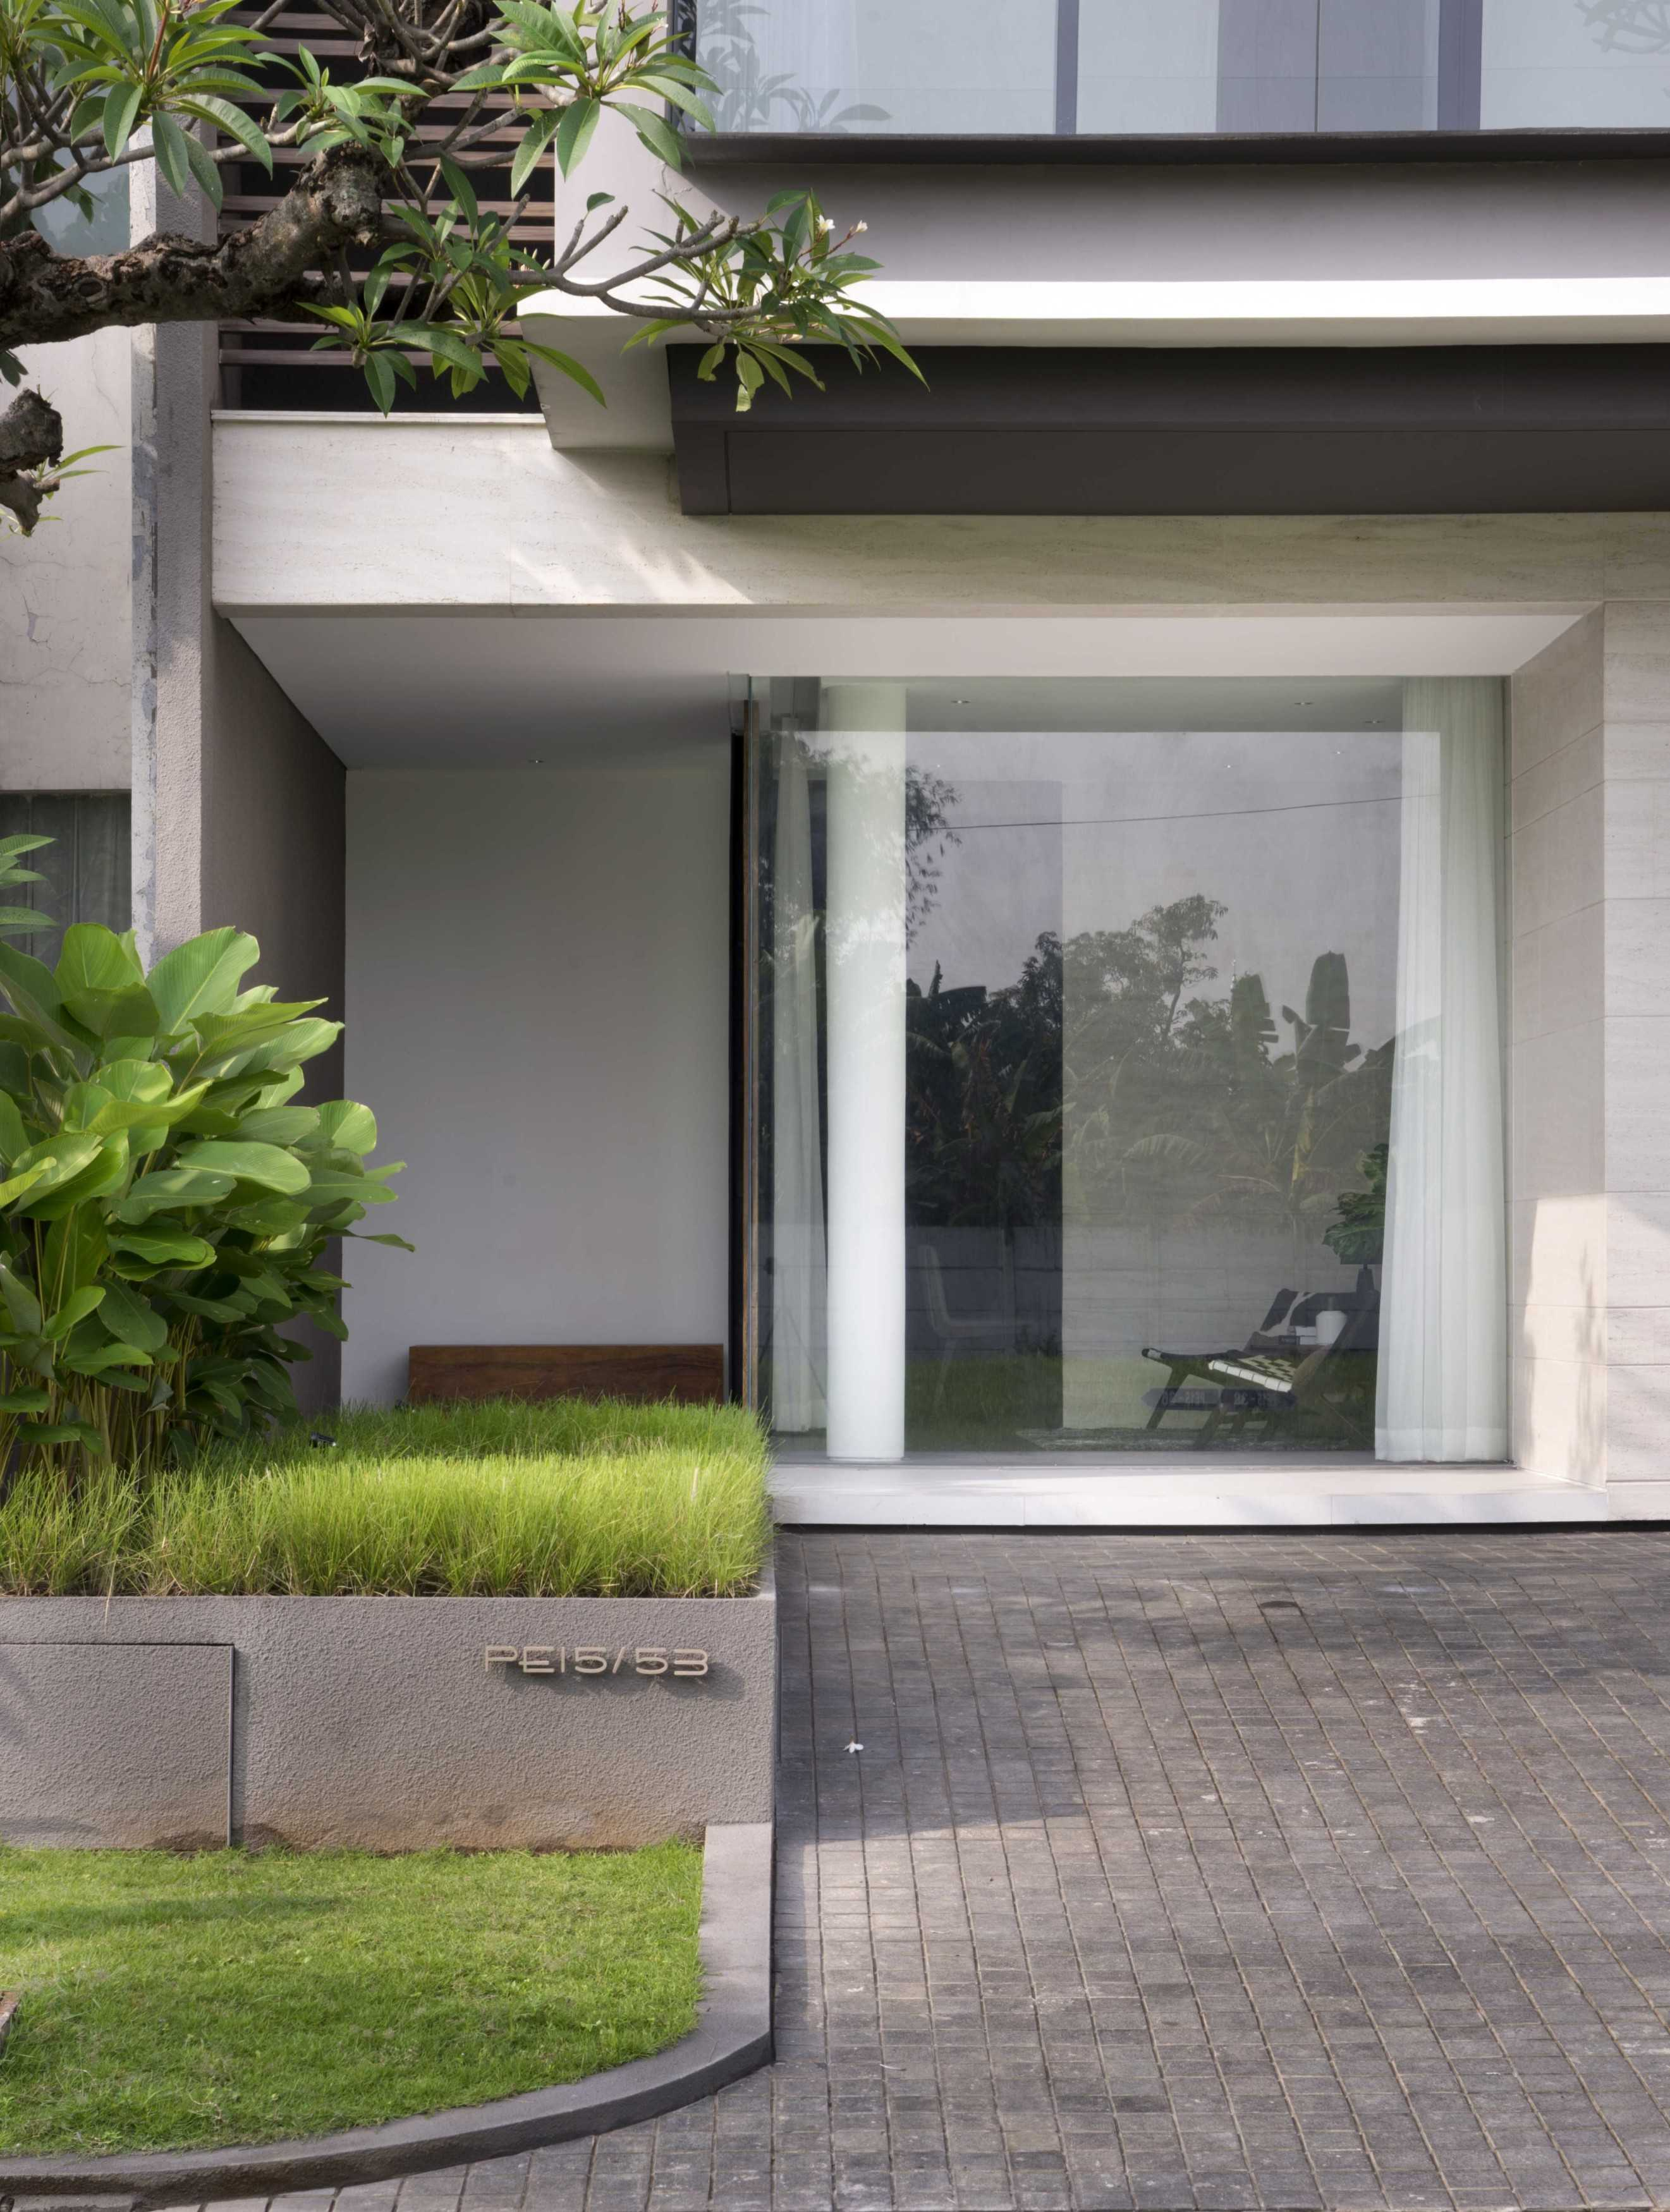 Simple Projects Architecture 'hhh' House Surabaya, Kota Sby, Jawa Timur, Indonesia  Simple-Projects-Architecture-Hhh-House   75043